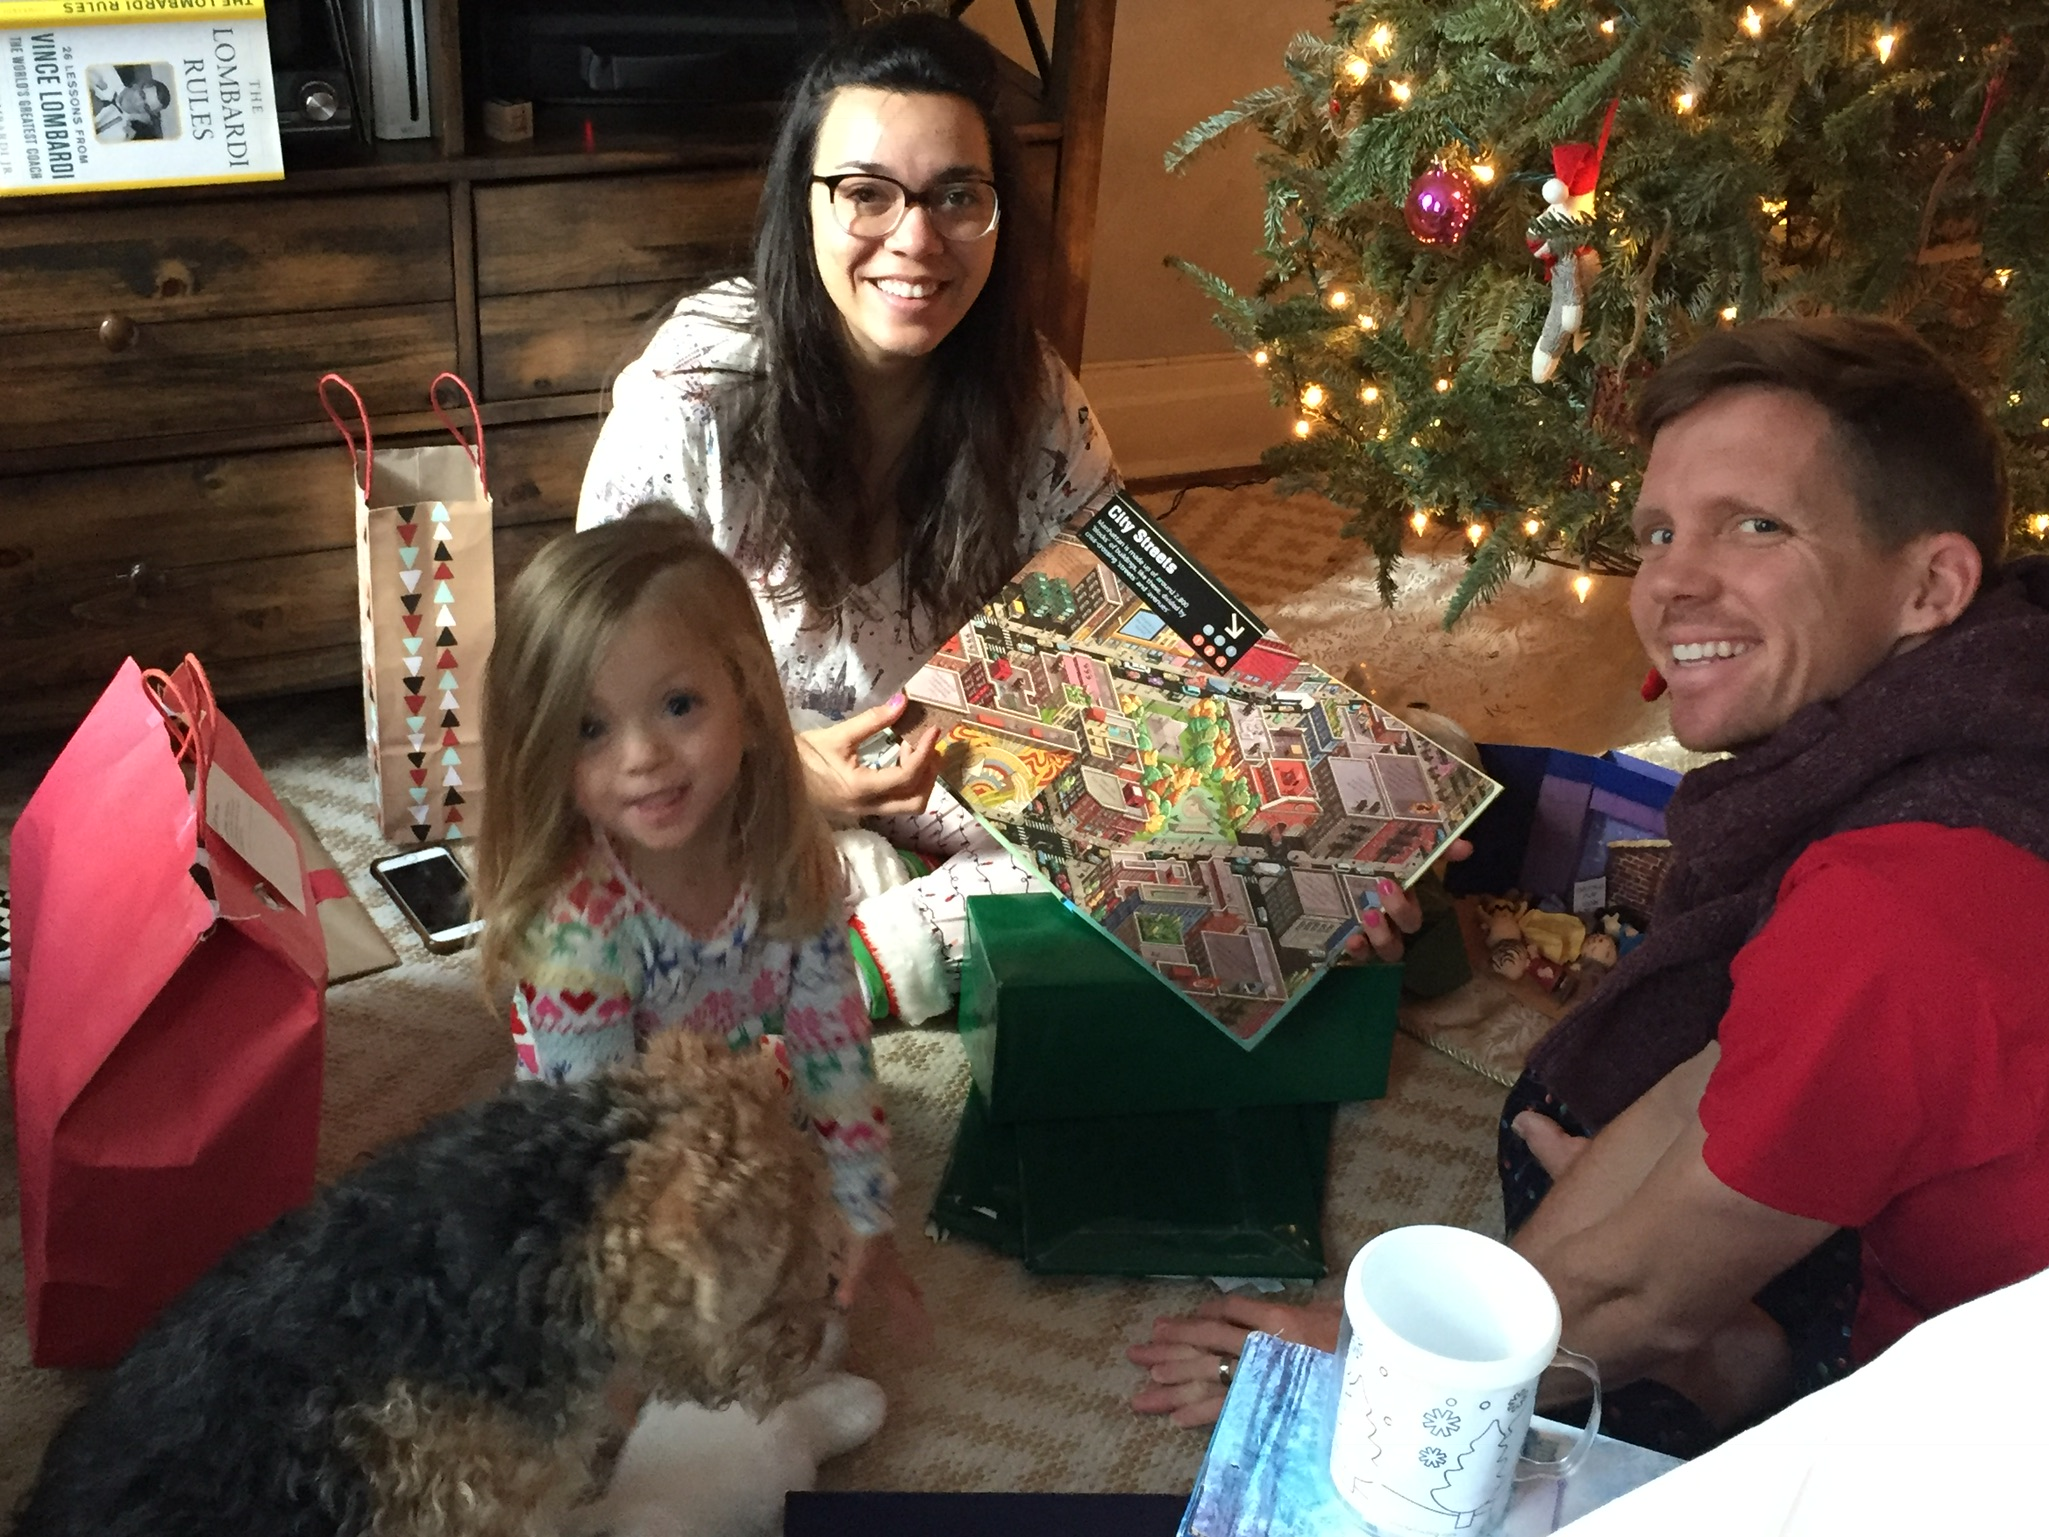 Opening gifts on Christmas morning.